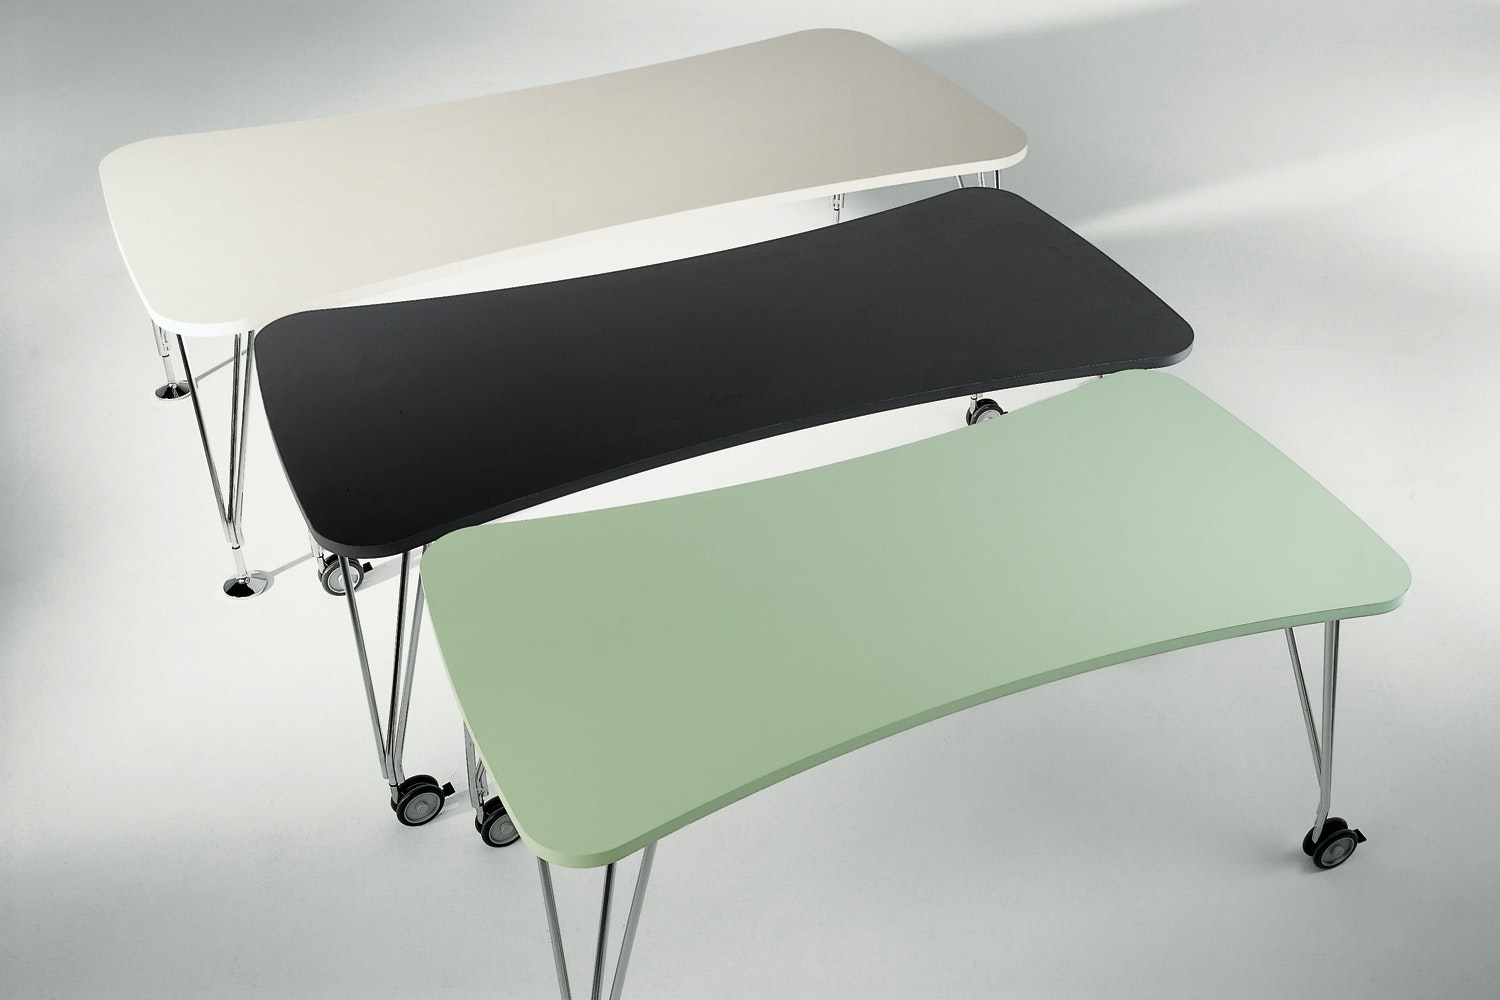 Max Small Table on Castors by Ferruccio Laviani for Kartell